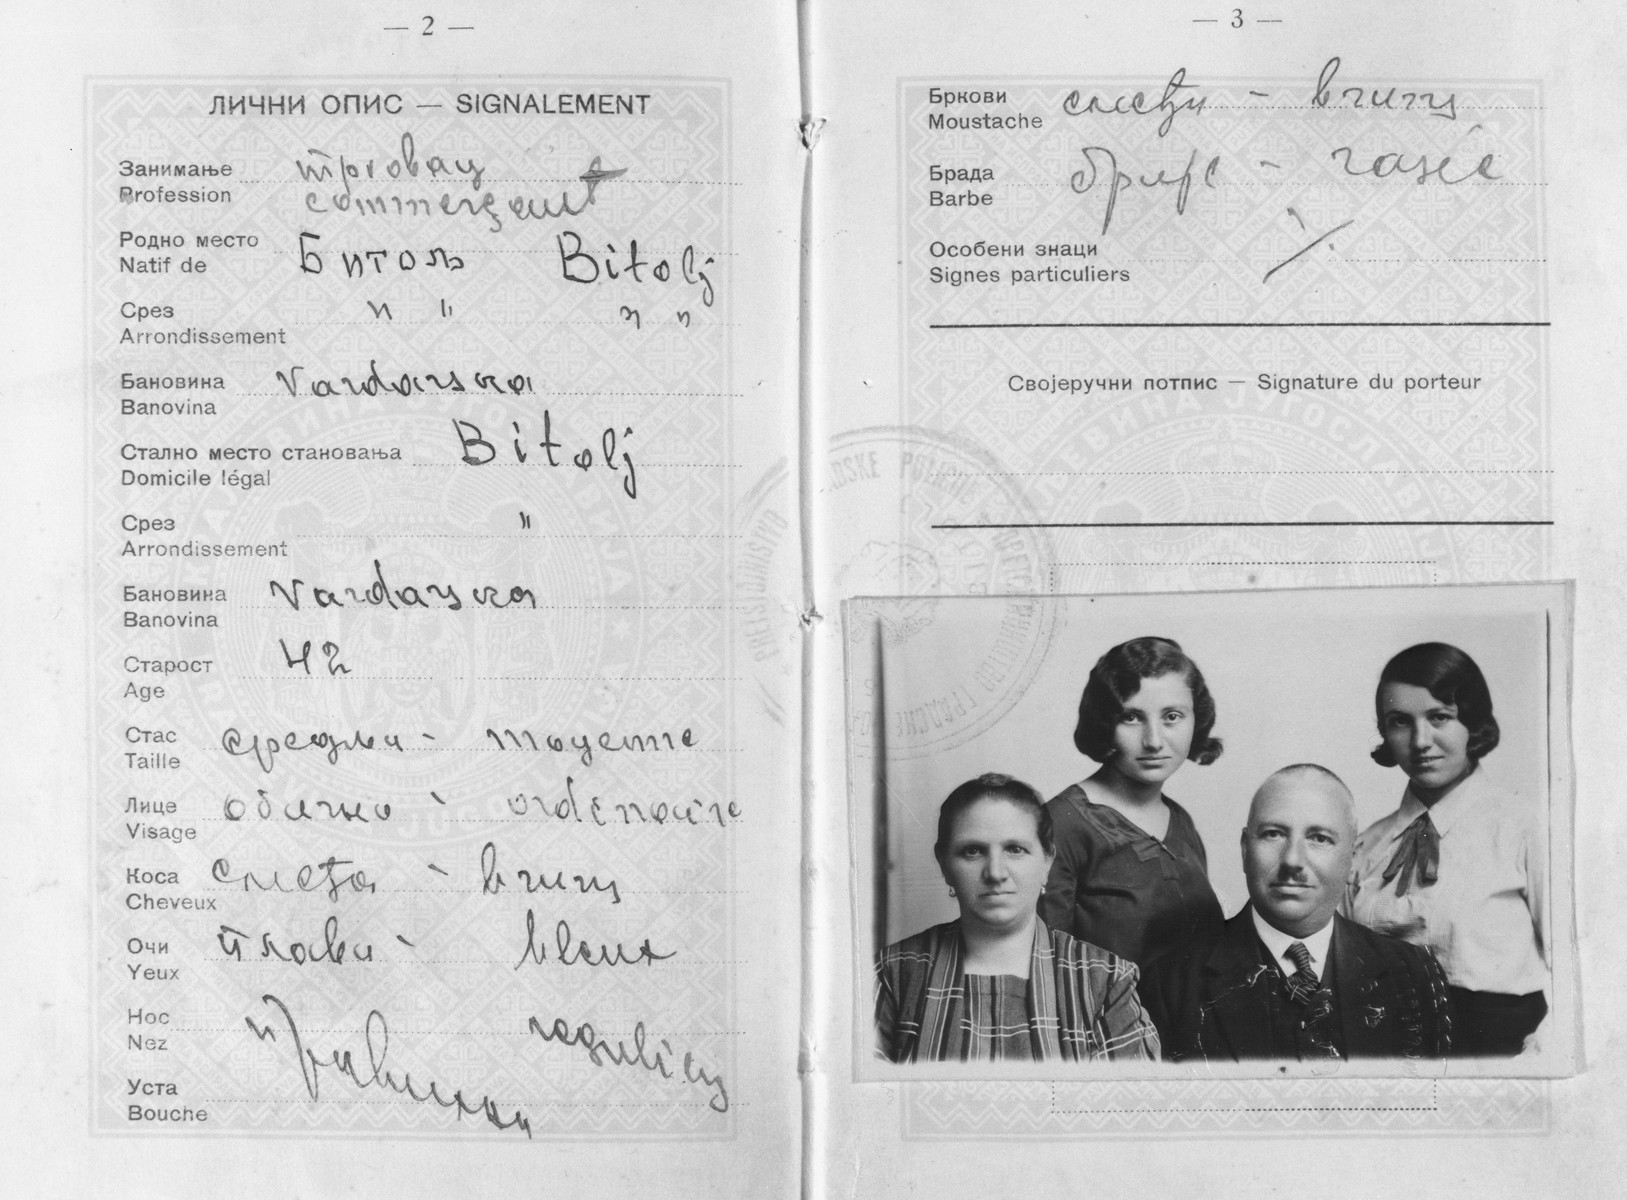 Passport with an attached photo of a Jewish family in Bitola, Macedonia.